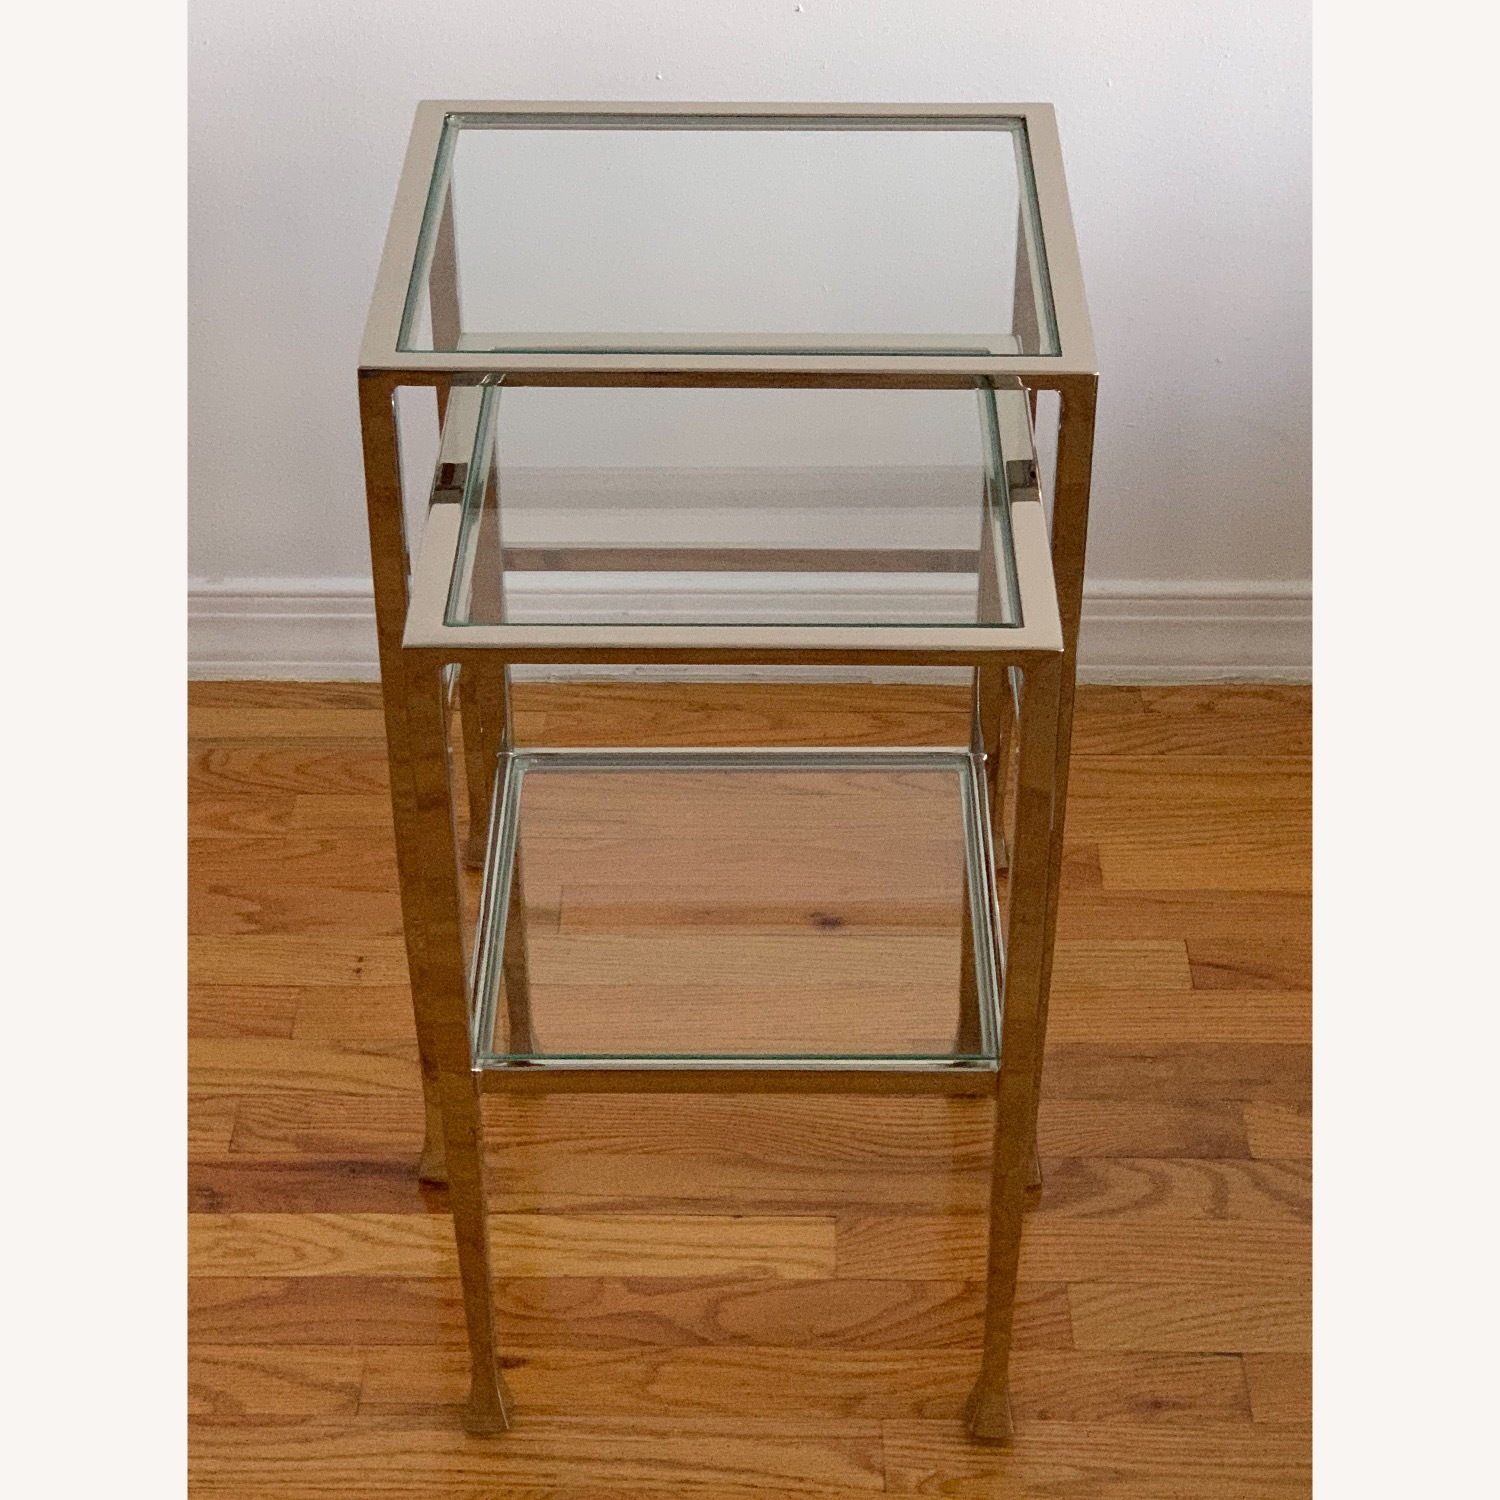 Pottery Barn Nickel End Tables - image-4